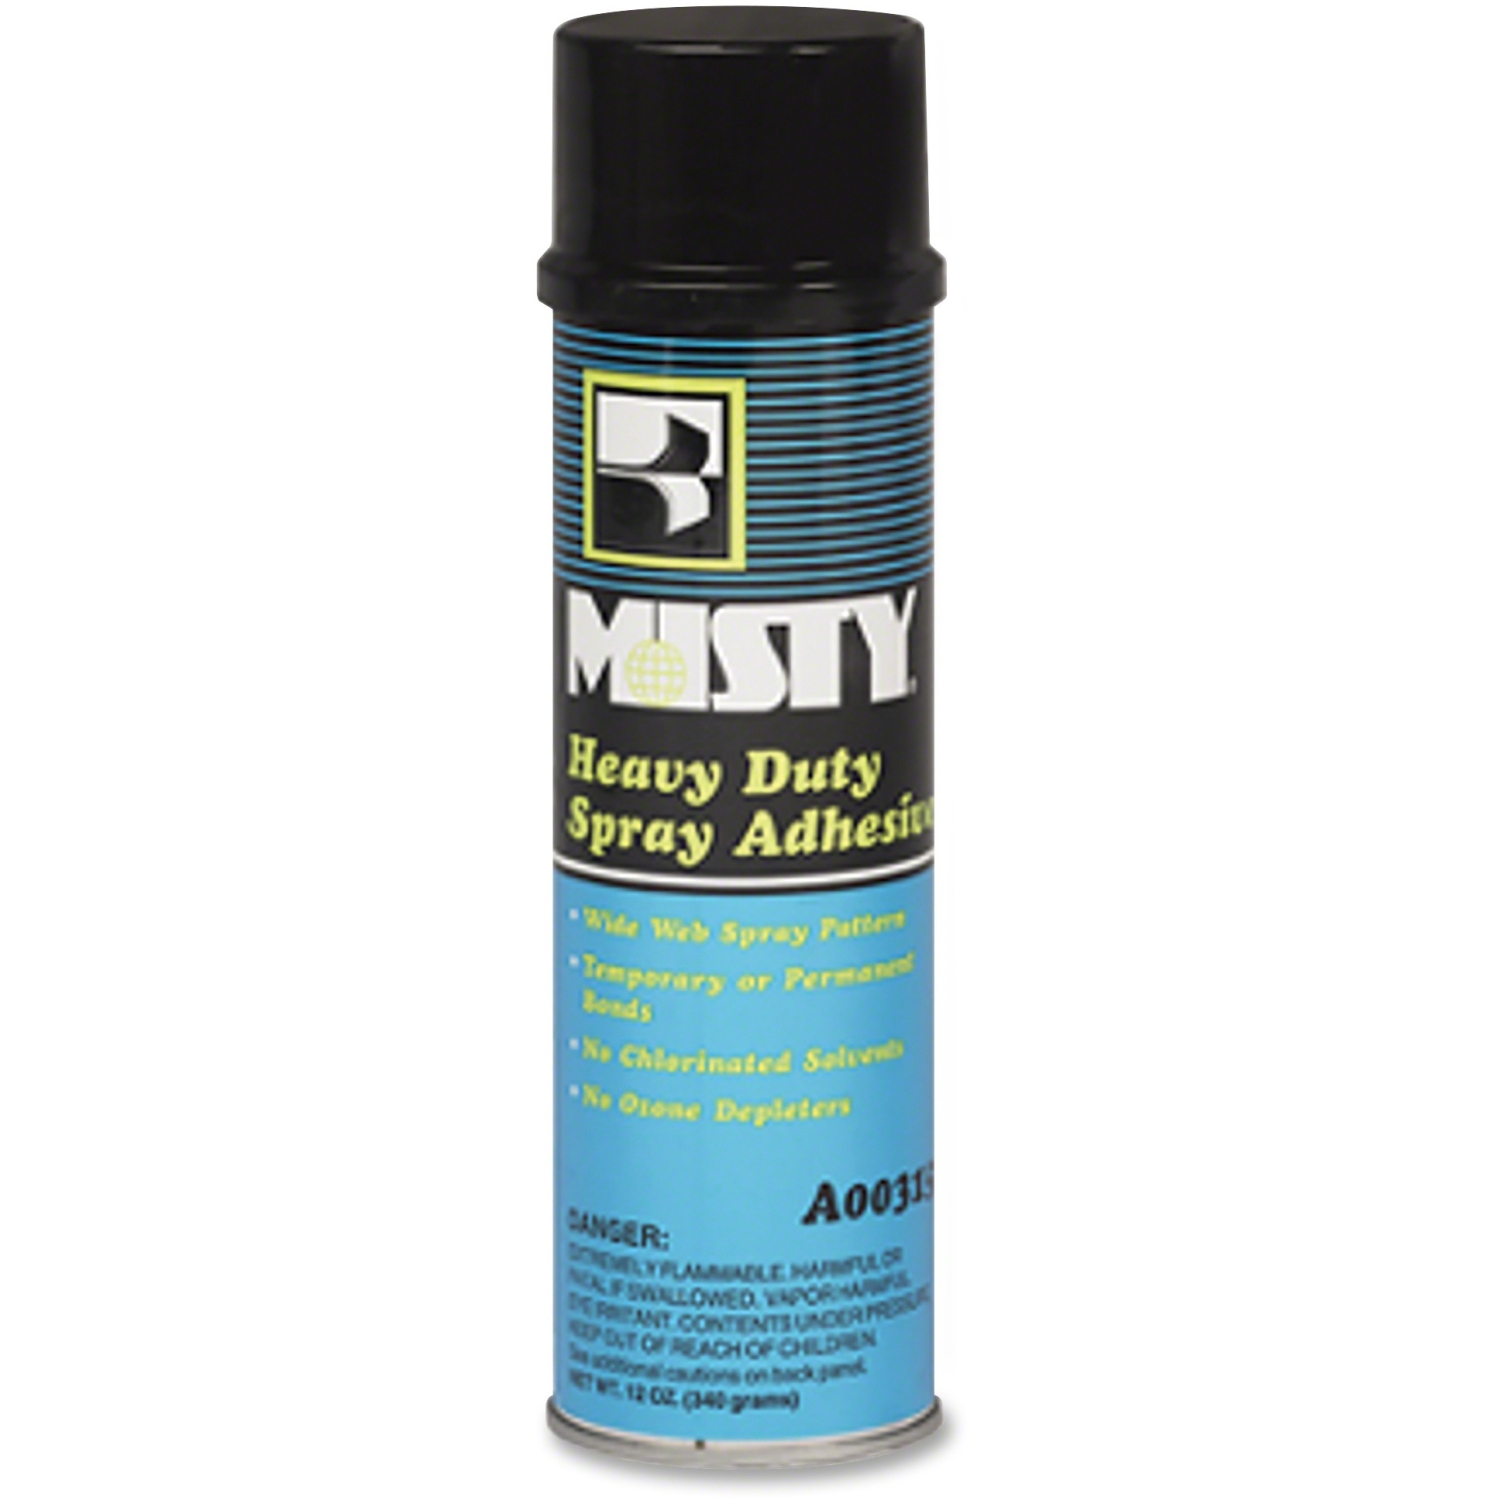 Heavy-duty Adhesive Spray